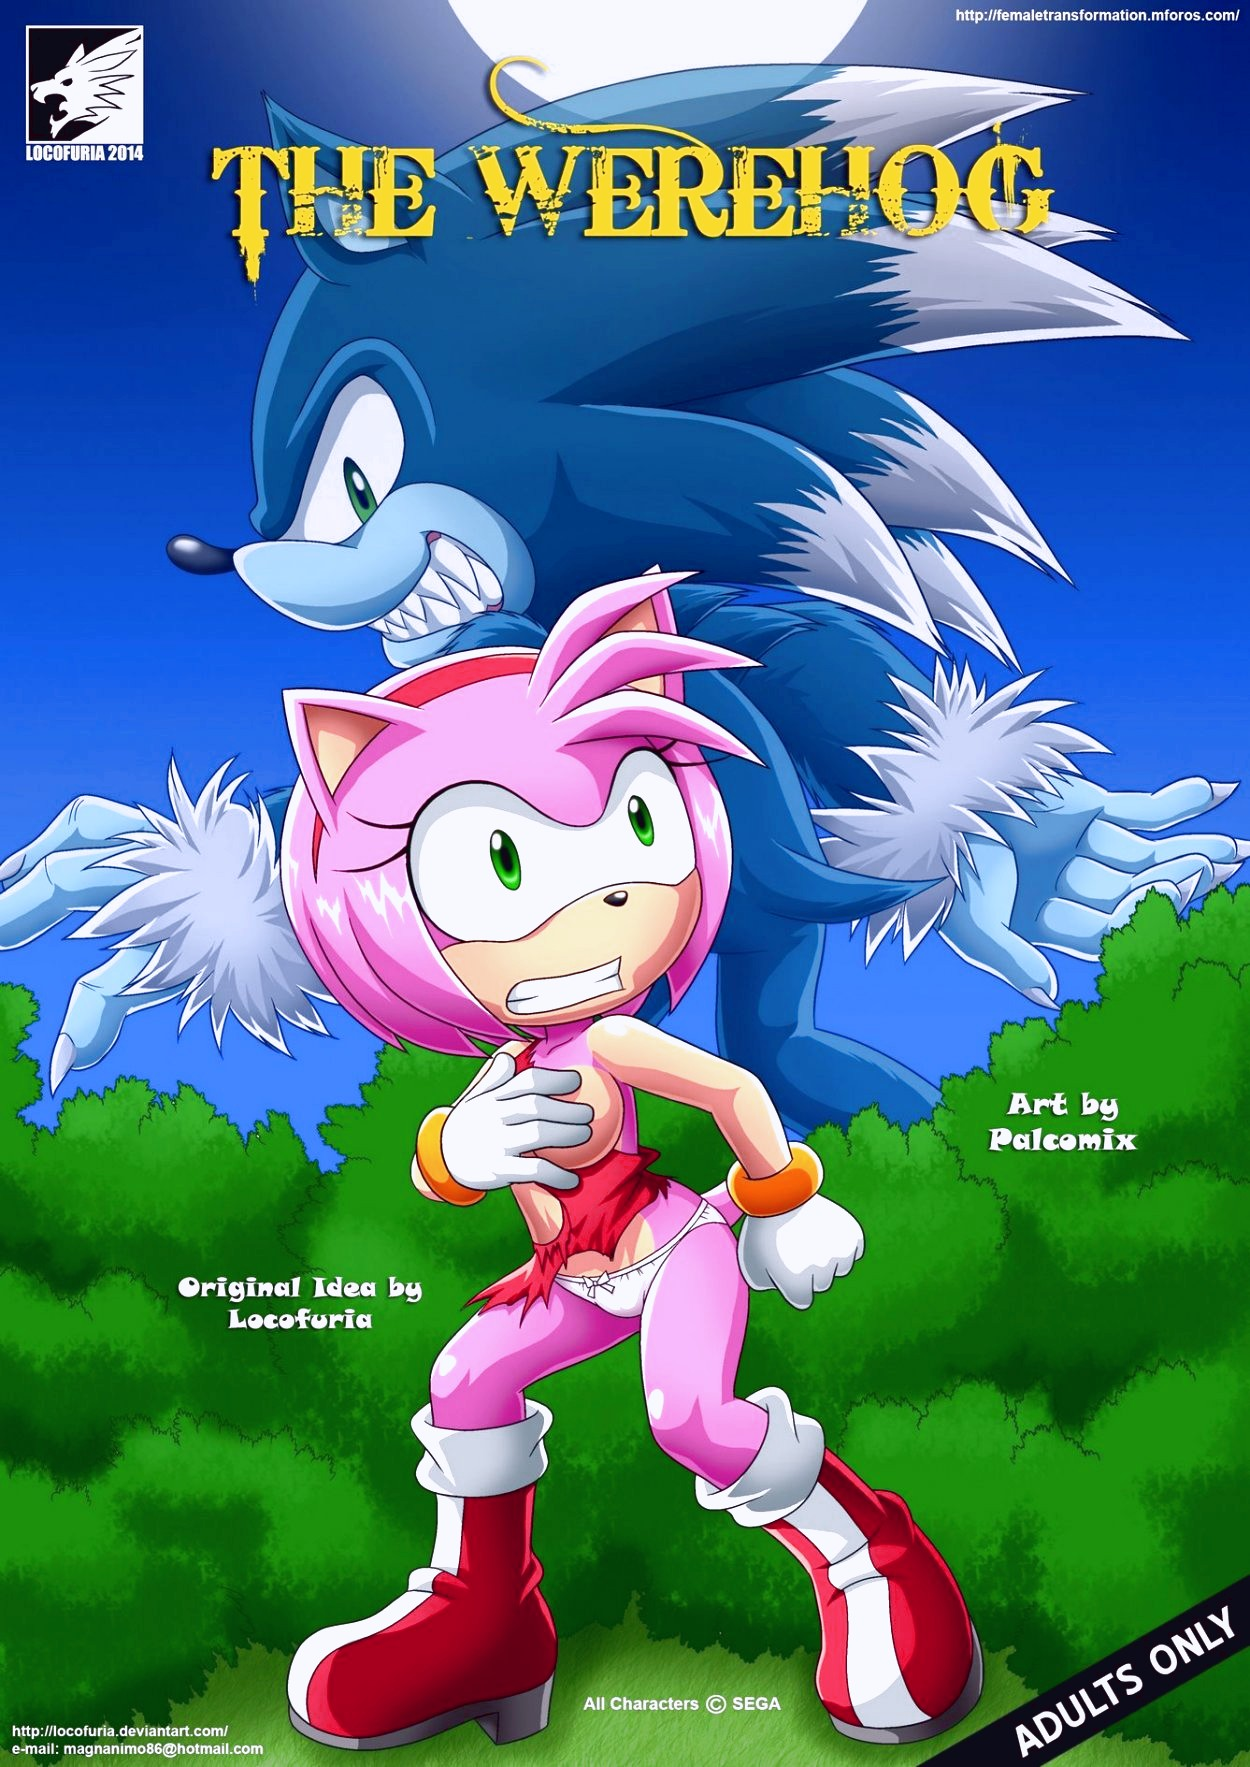 THE WEREHOG porn comic page 01 on category Sonic The Hedgehog